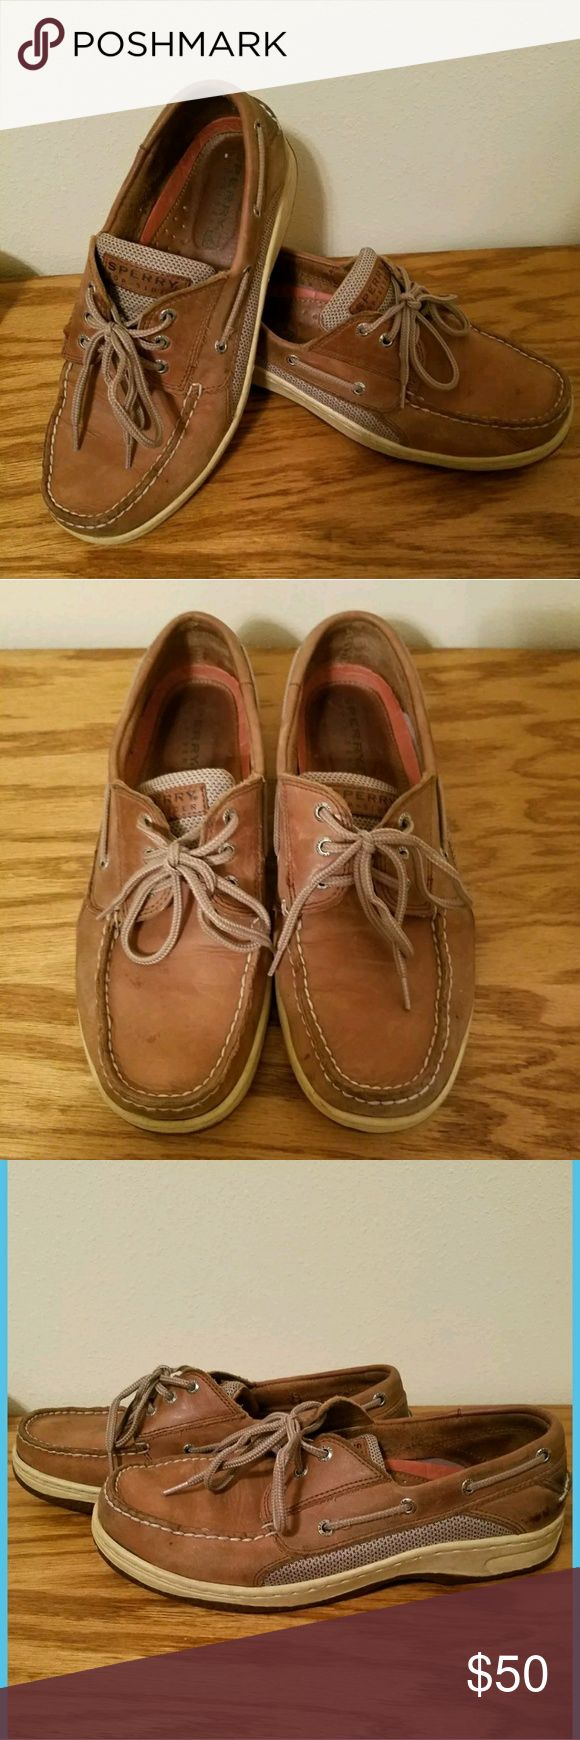 Sperry Top Sider Billfish 3 eye Boat Shoes 10 WIDE Mens Size 10W Wide Sperry Billfish 3 eye Boat Shoes.  Barely Worn In Excellent Condition!  Great Tan/Beige Color Perfect For Any Season.   Thanks for looking! Message me with any questions! Sperry Shoes Boat Shoes